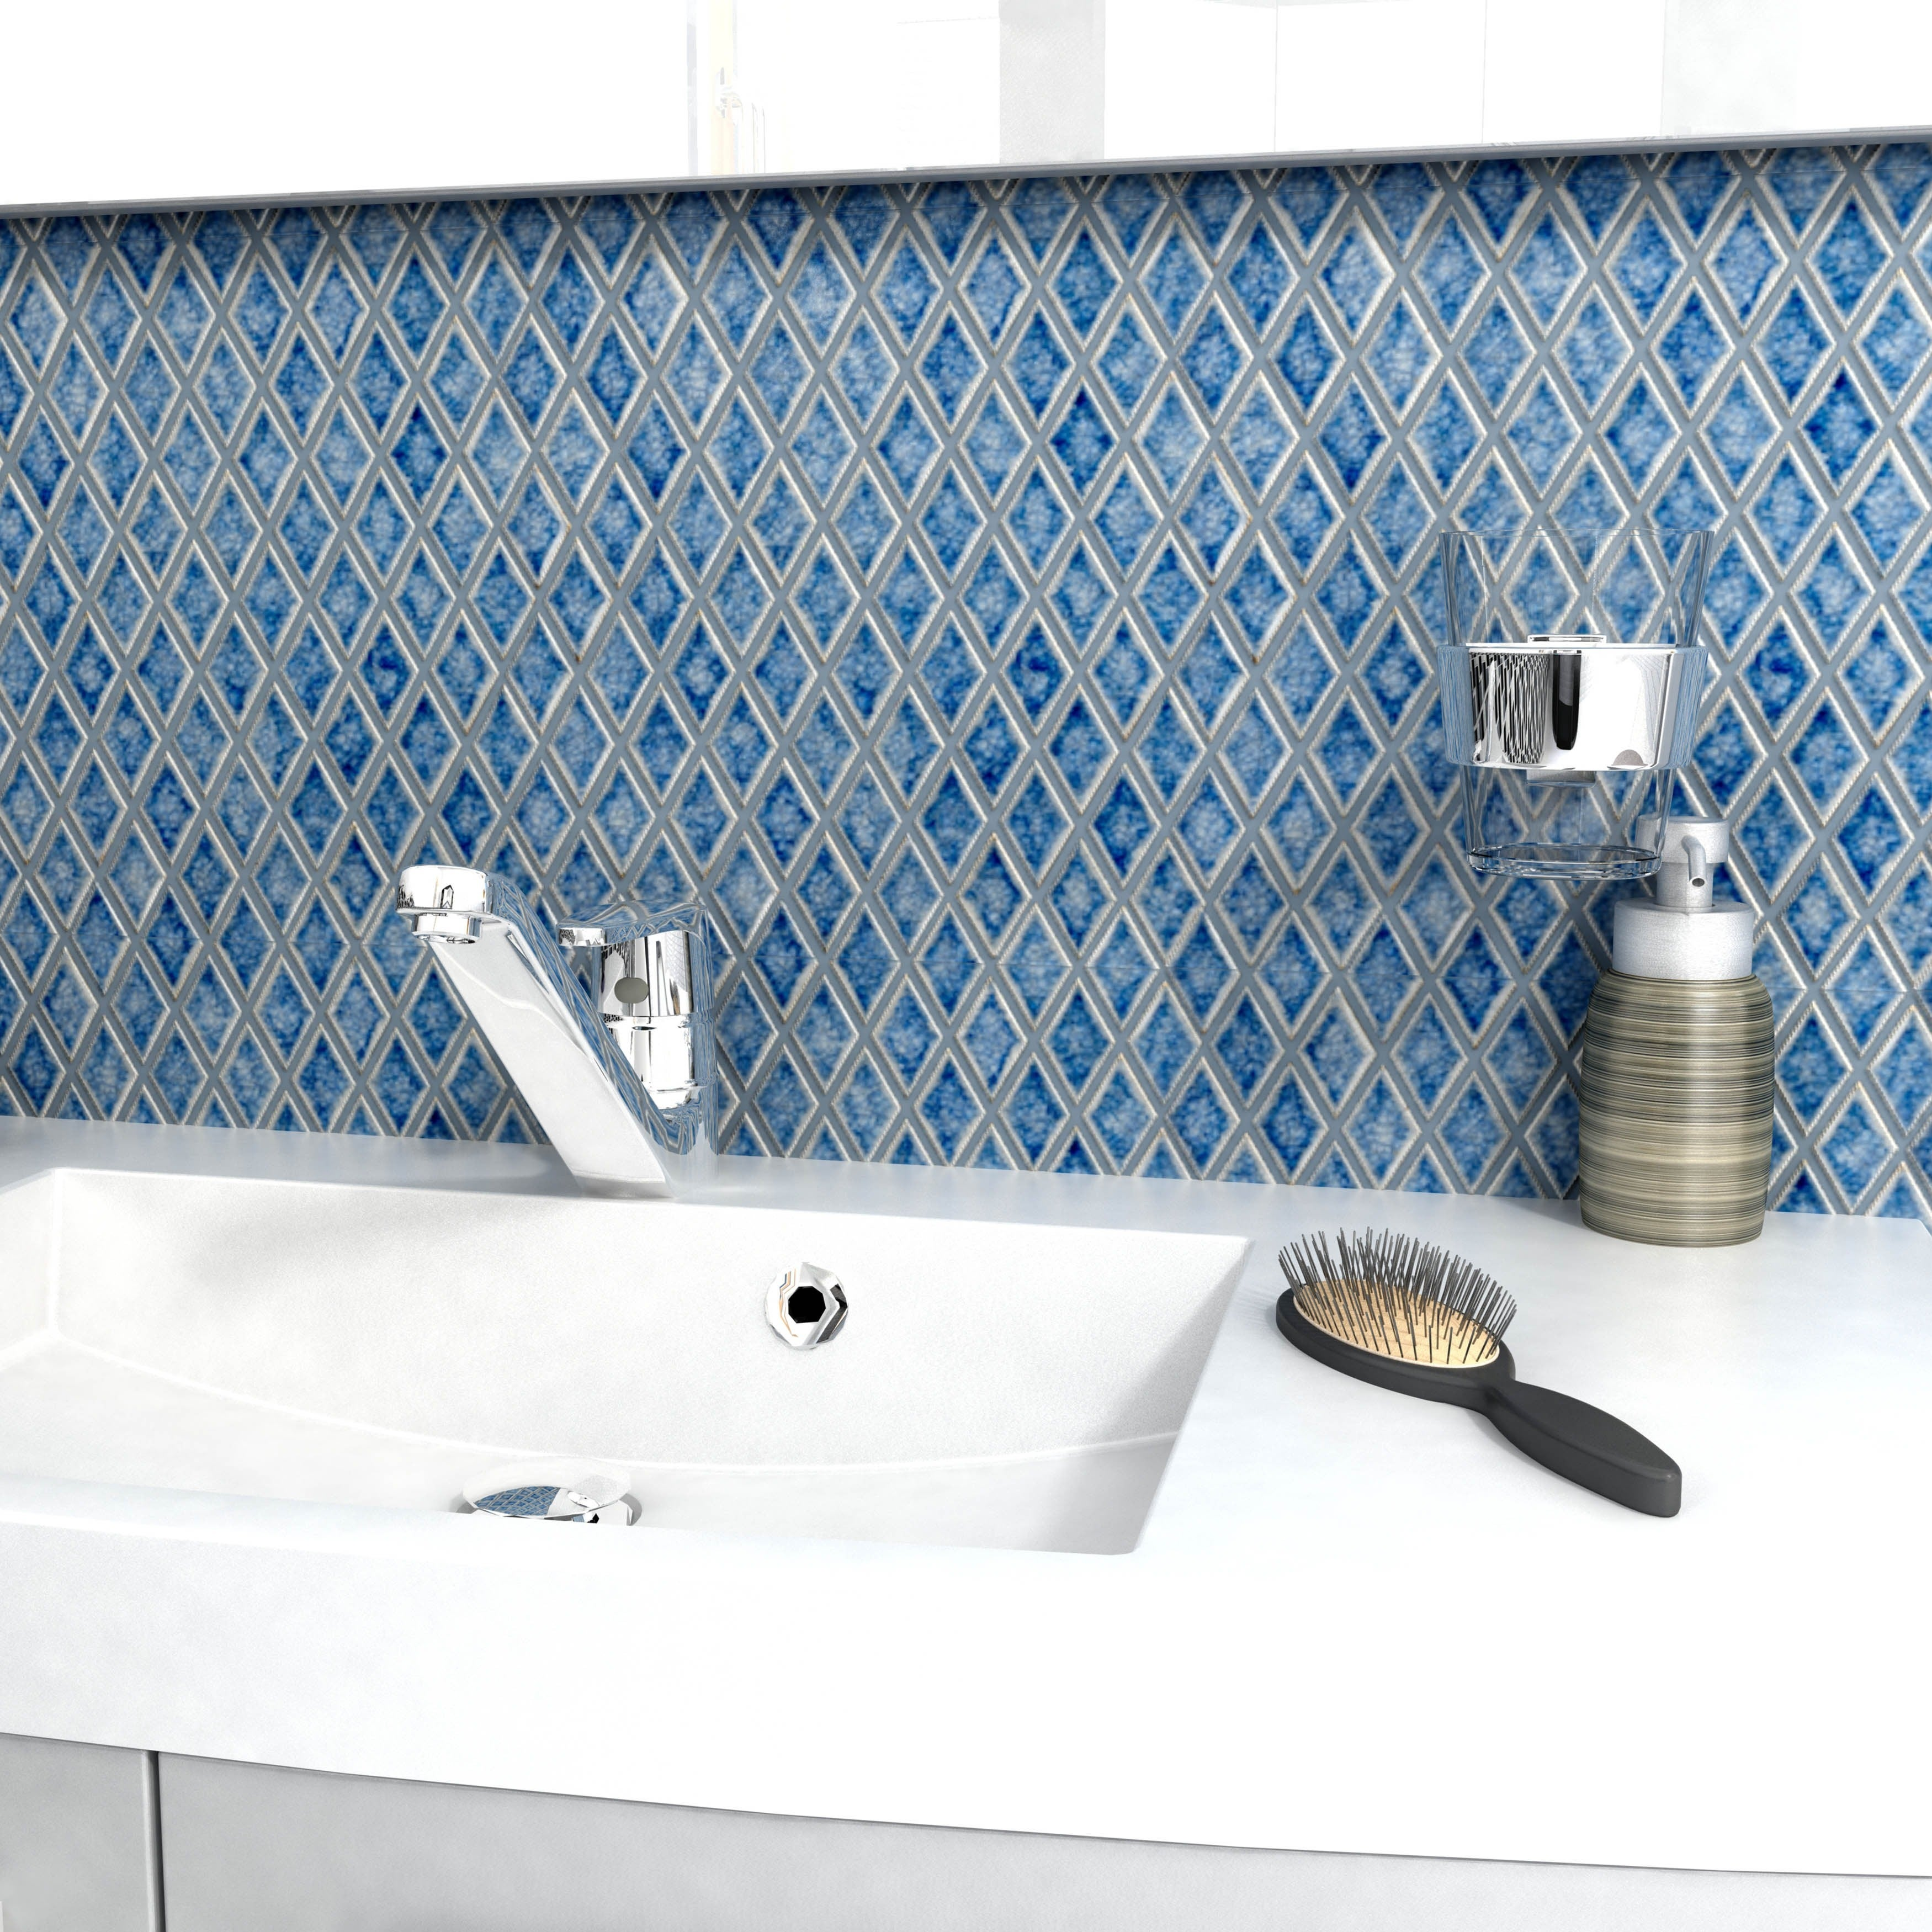 SomerTile 12x12-inch Crackle Diamond Azure Ceramic Mosaic Wall Tile ...